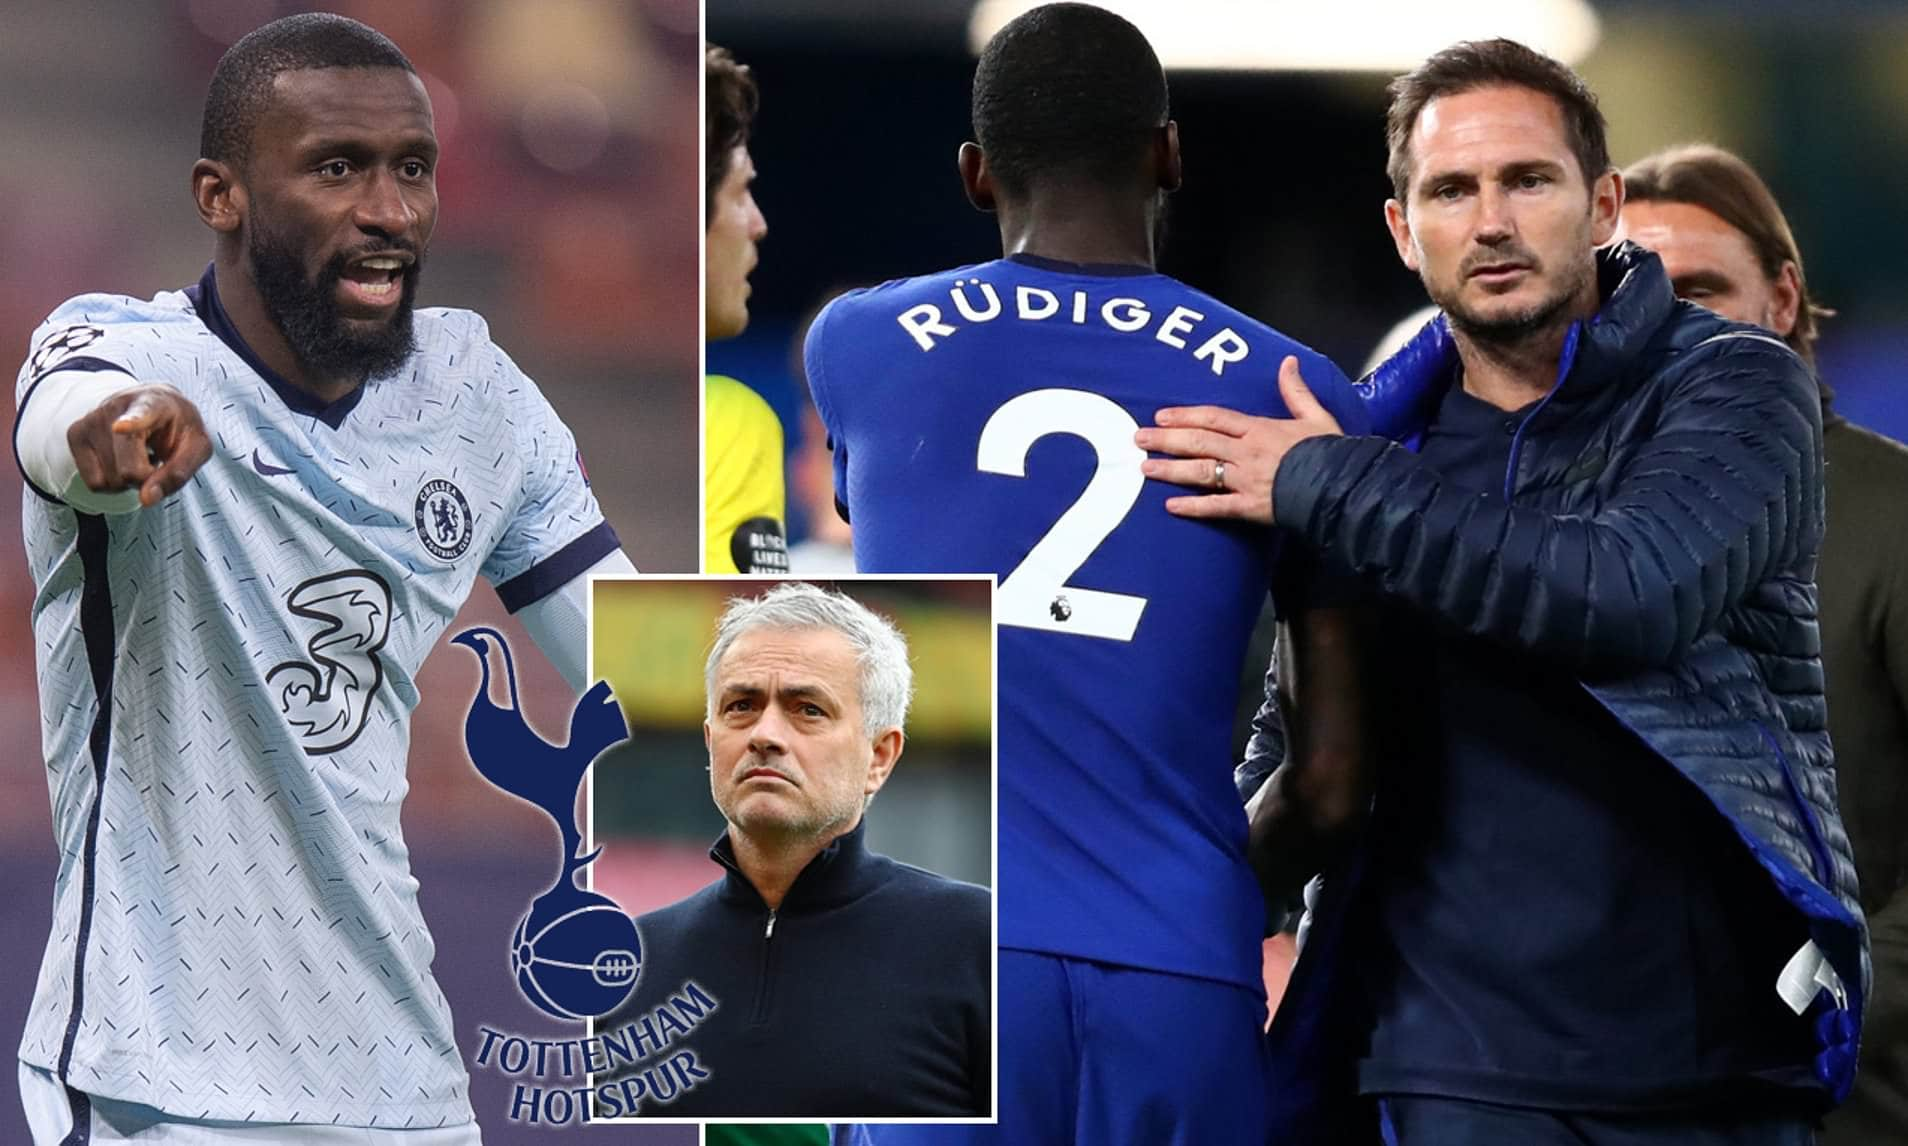 Rudiger Held Talks With Mourinho Over Tottenham Hotspur Move